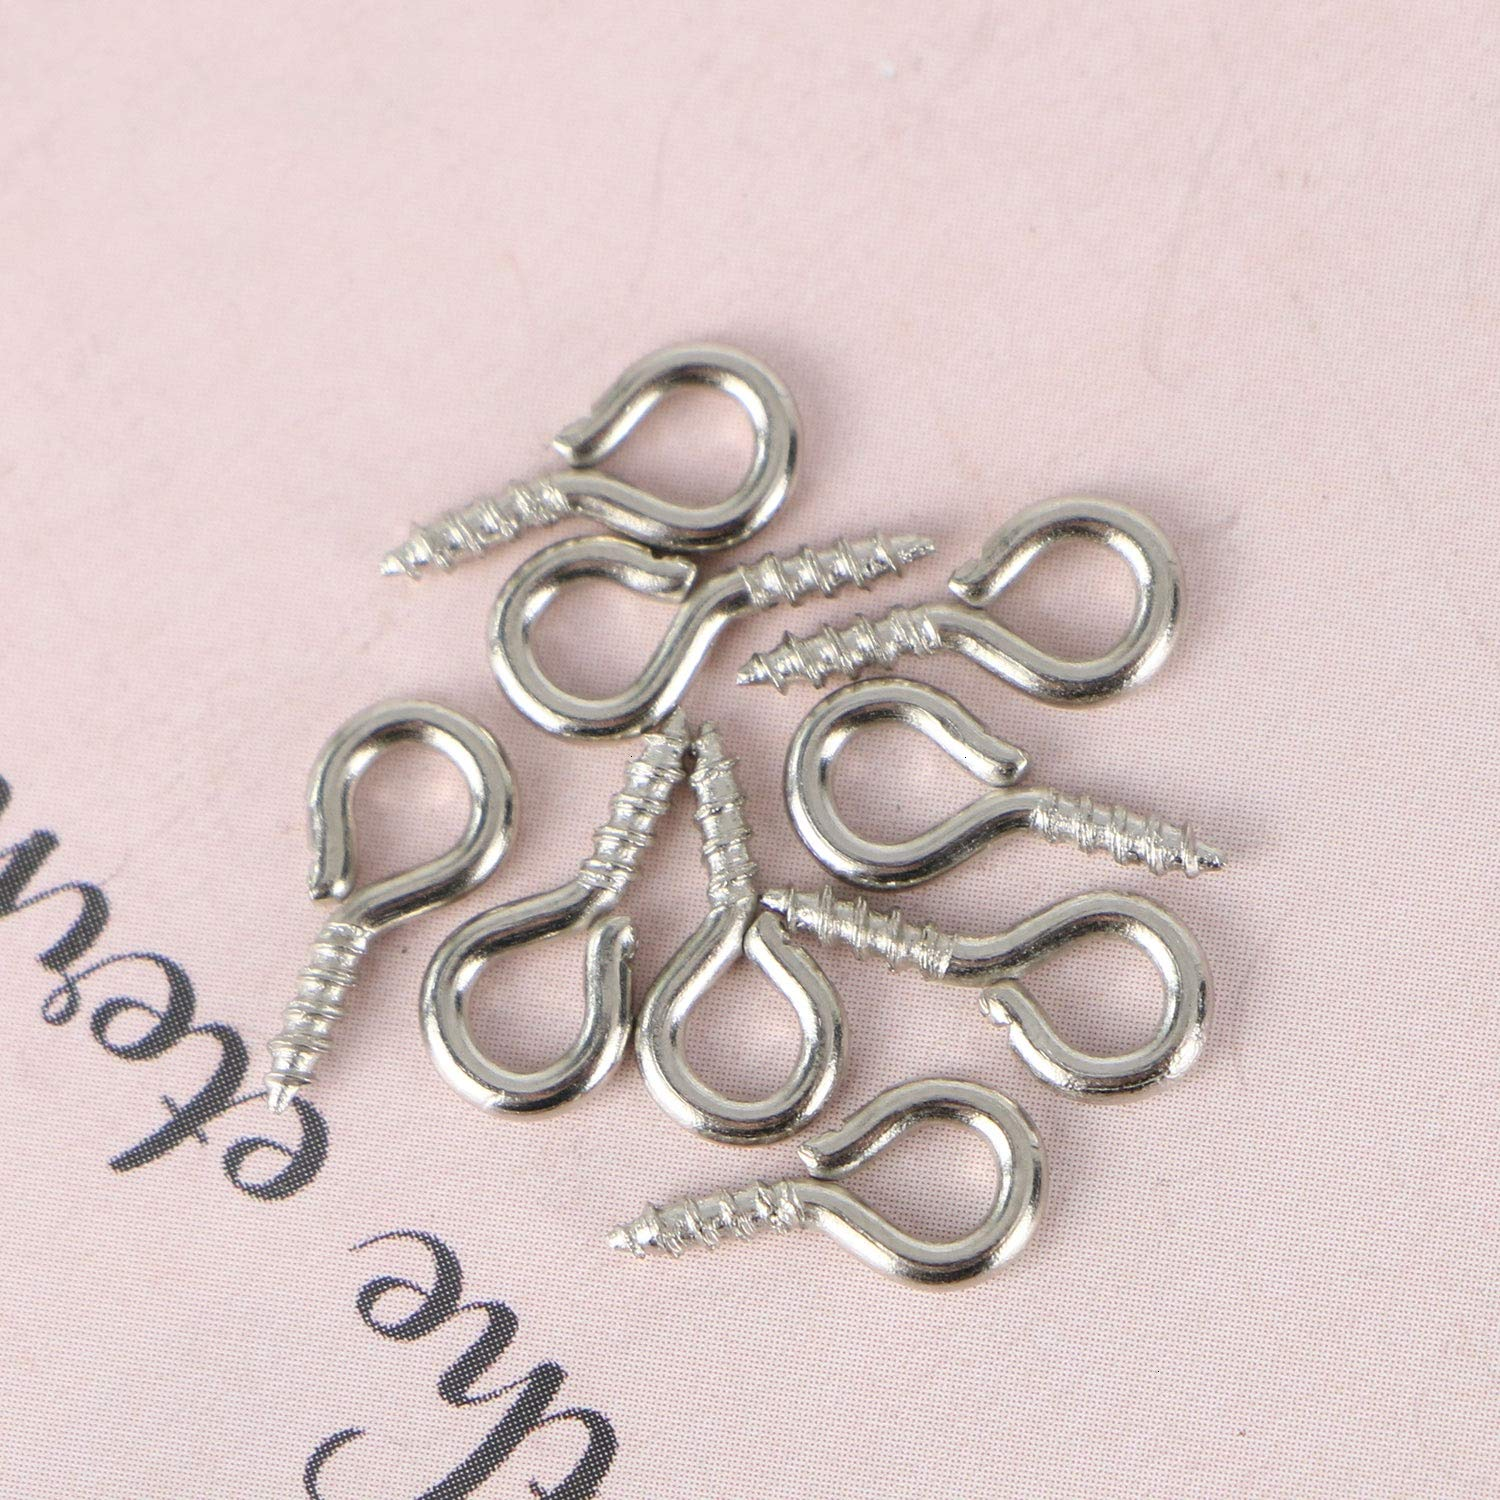 Metal Eye Hook Eye Shape Screw Hooks Self Tapping Screws Hooks Ring for Clay Jewelry Resin Bead Monrocco 1000Pcs Silver Tone Small Screw Eye Pins Eye pins Hooks